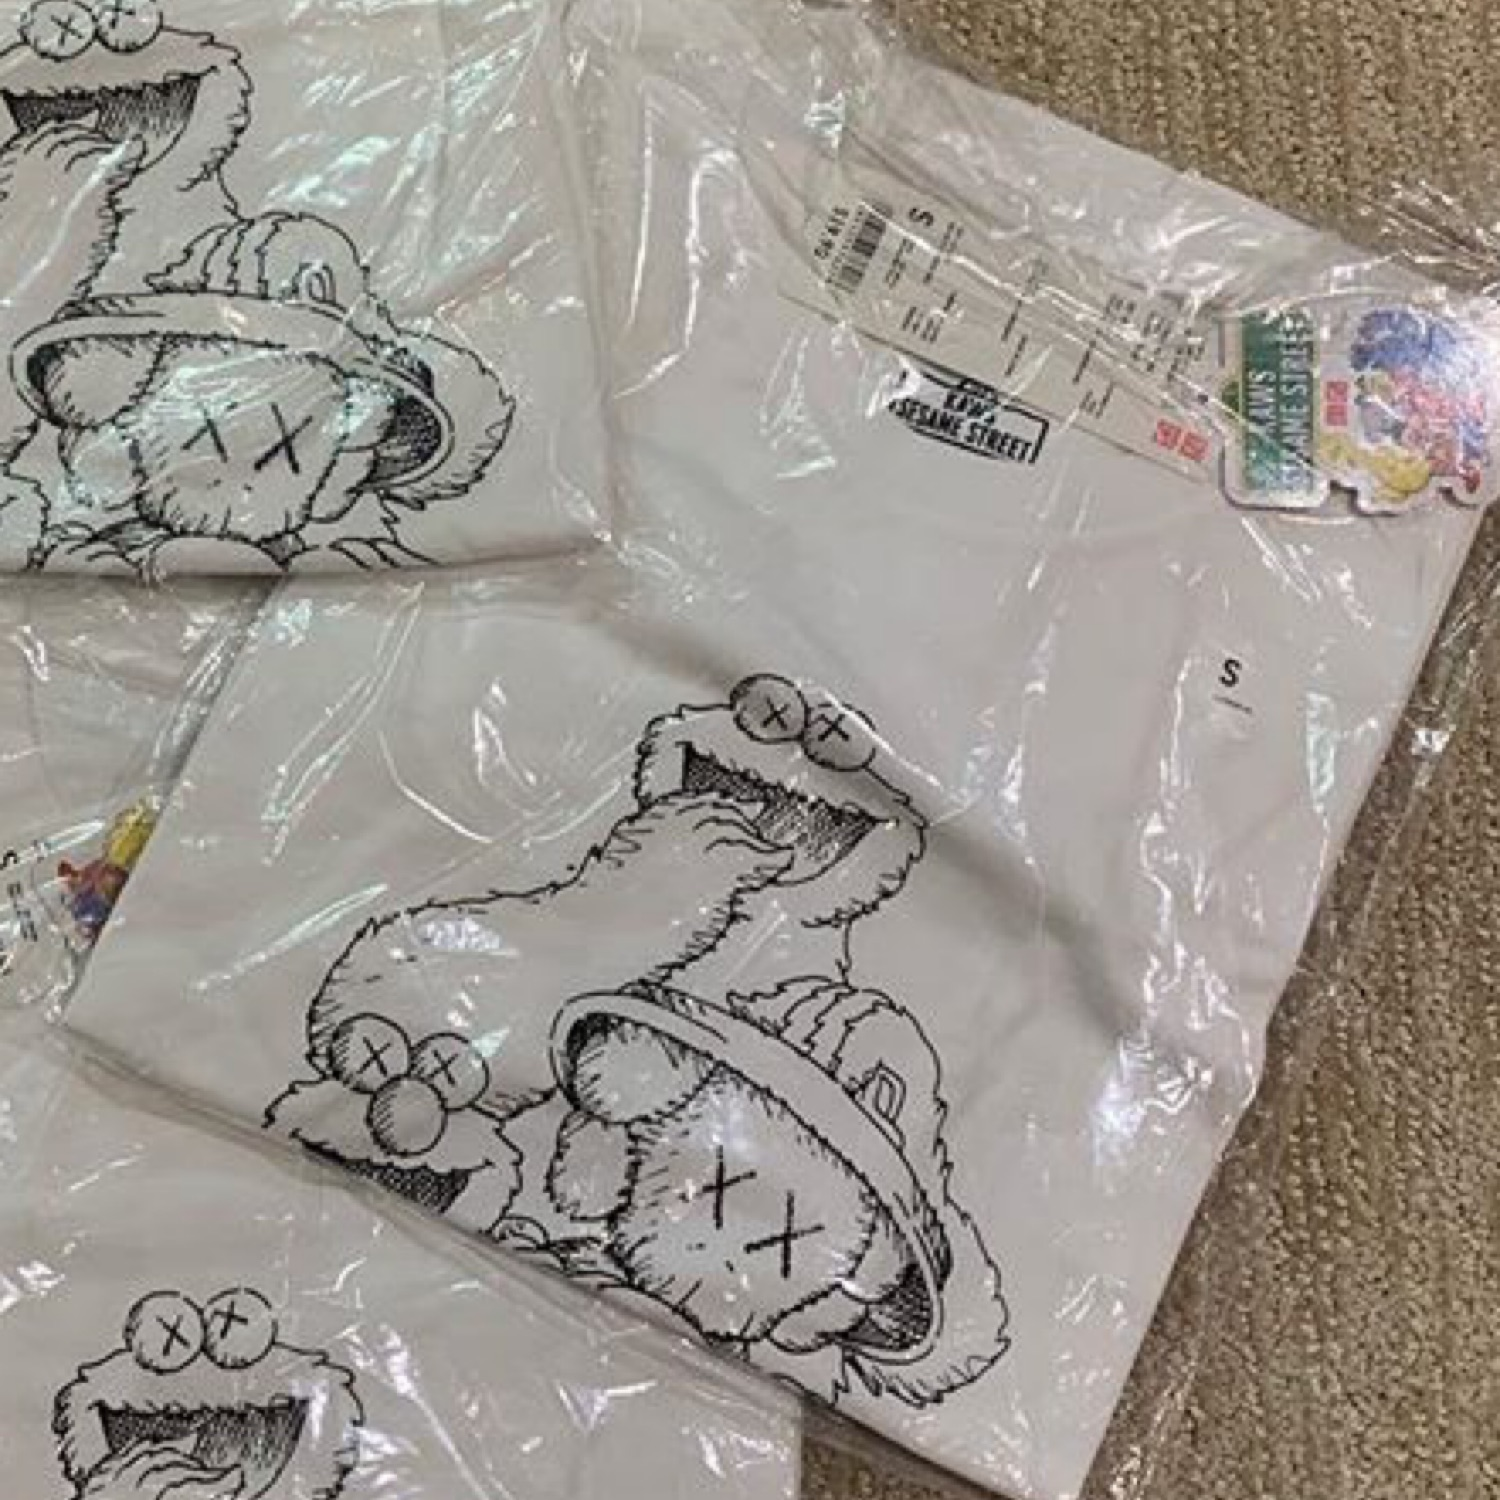 Kaws Uniqlo Cookie Monster Elmo White Tee